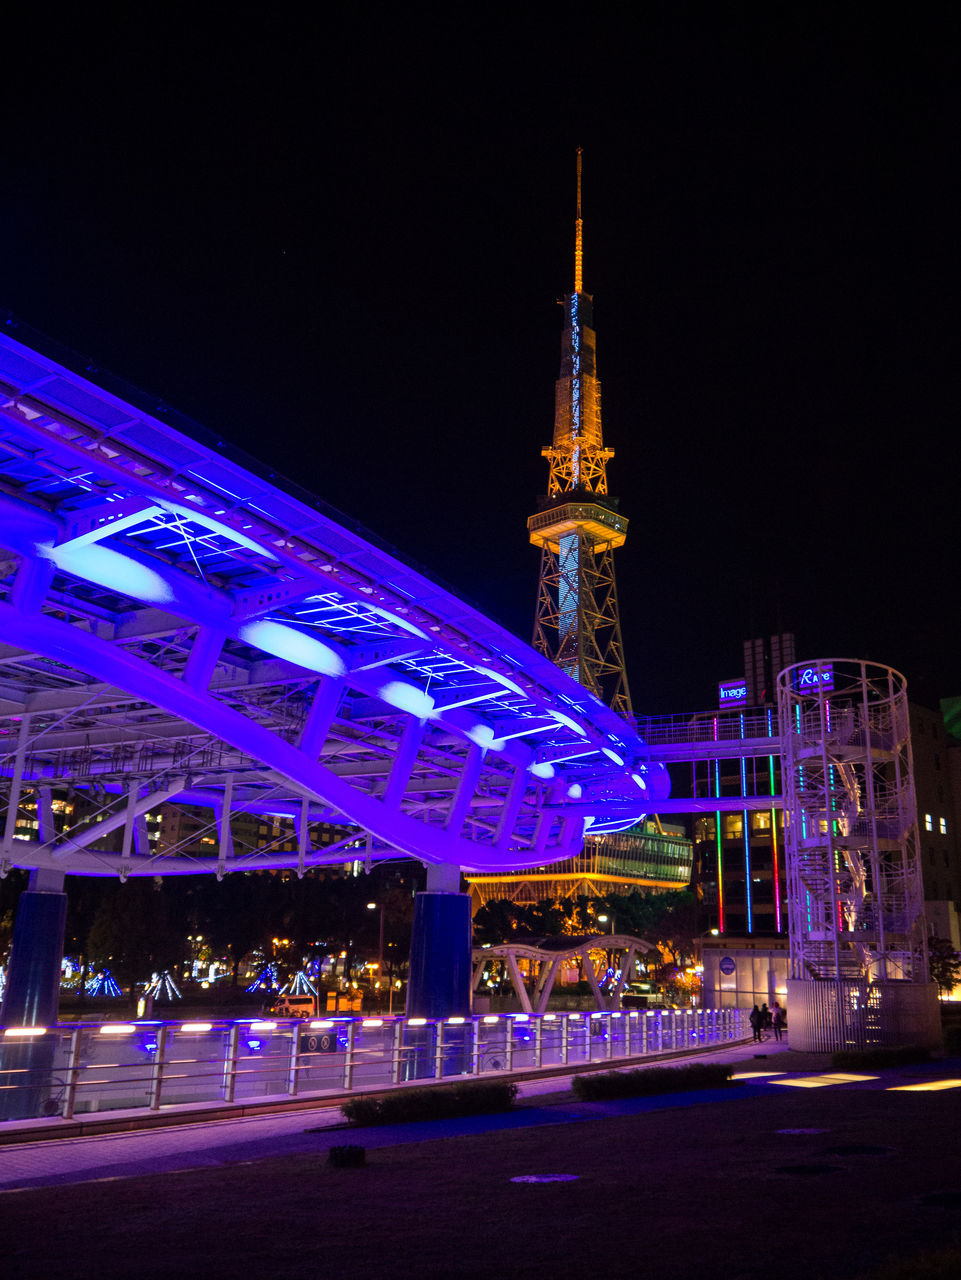 night, illuminated, architecture, built structure, building exterior, no people, outdoors, sky